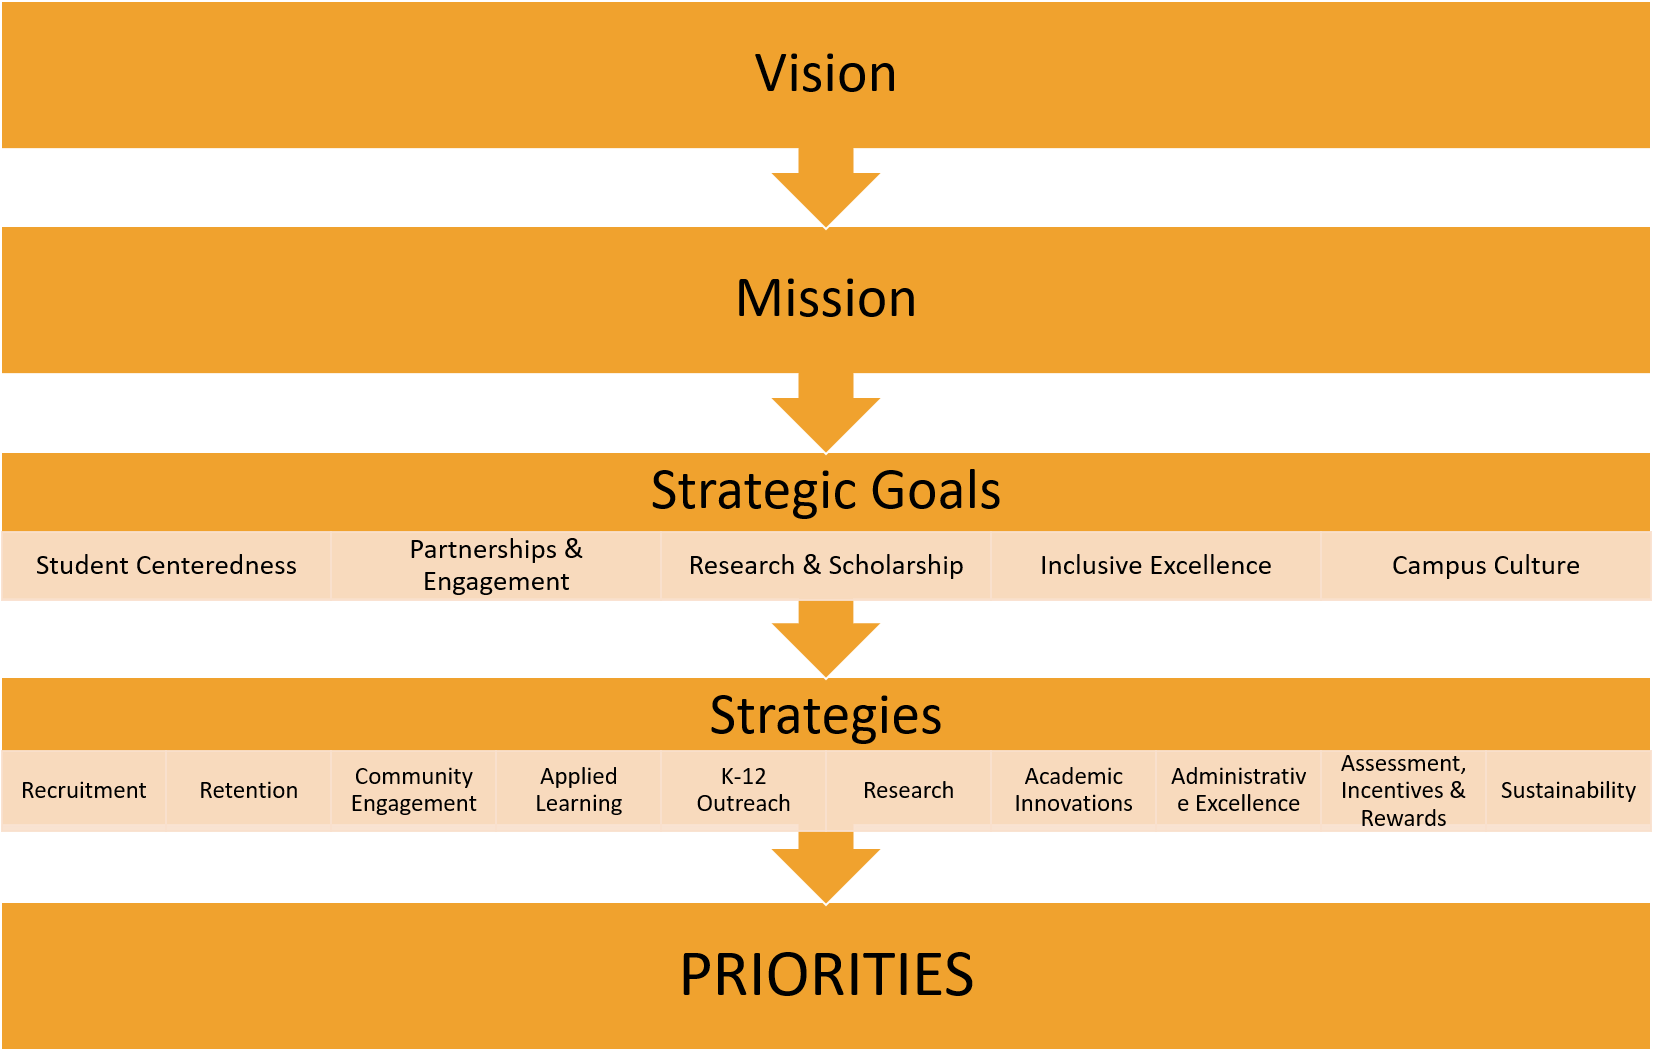 view of vision, mission to priorities